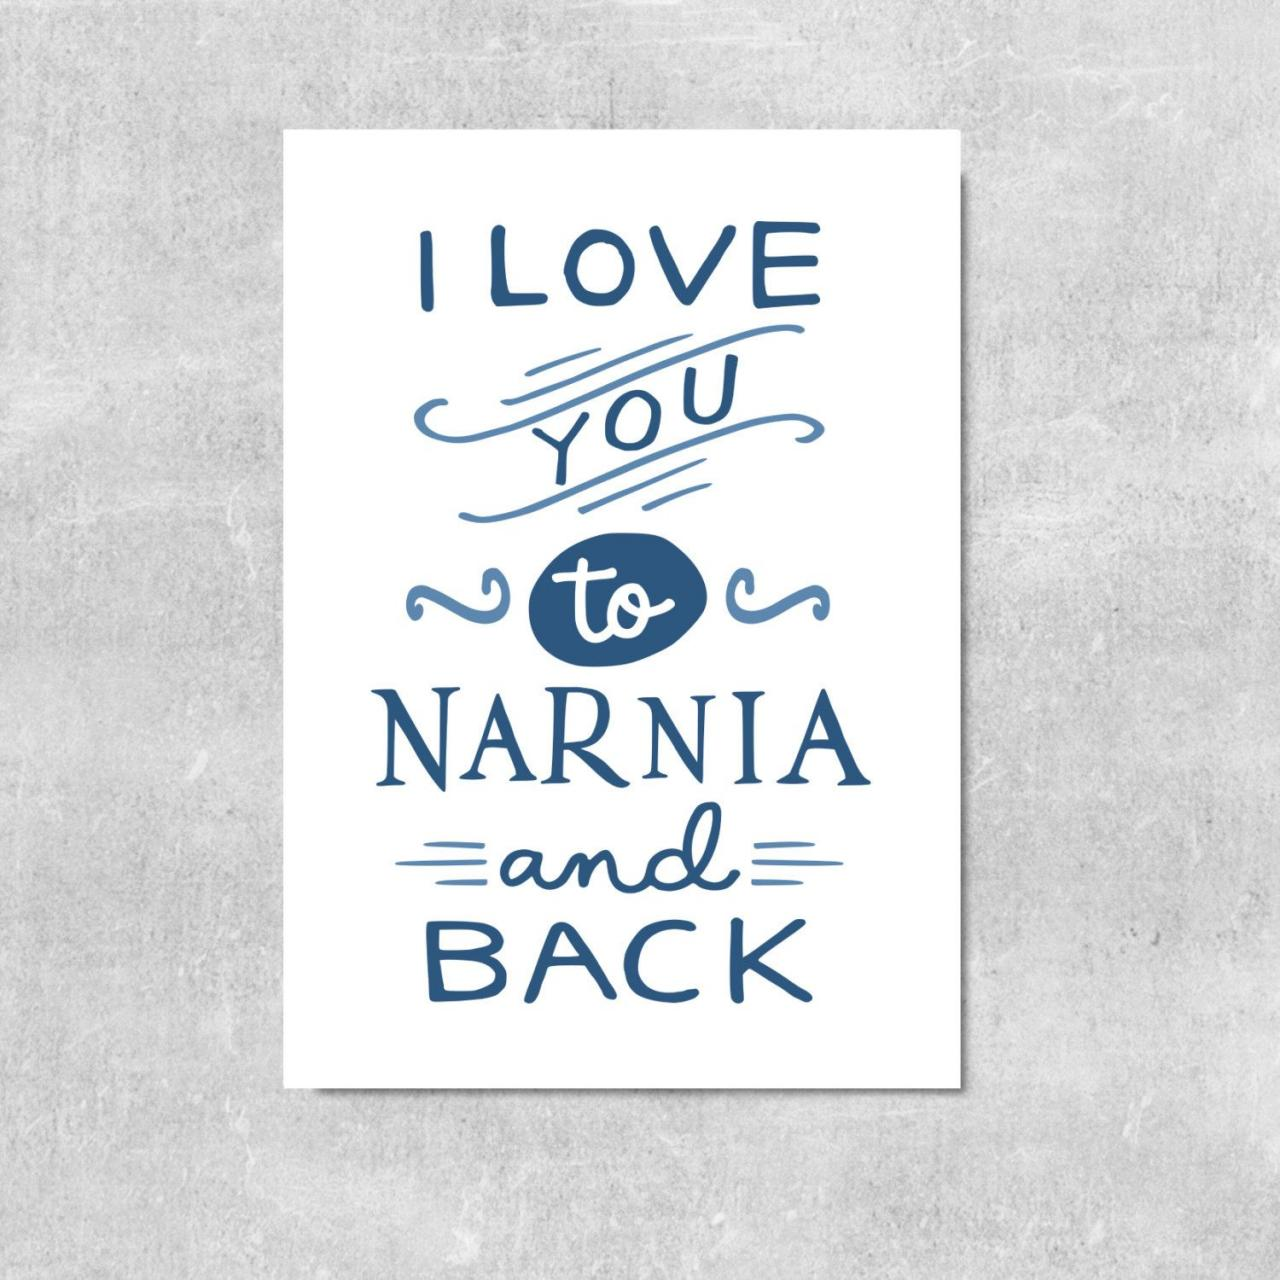 Narnia Print Love Quote Husband Gift Wife Gift Bookish Childrens Book Art C S Lewis I Love You To Narnia And Back Gift For Son Or Daughter